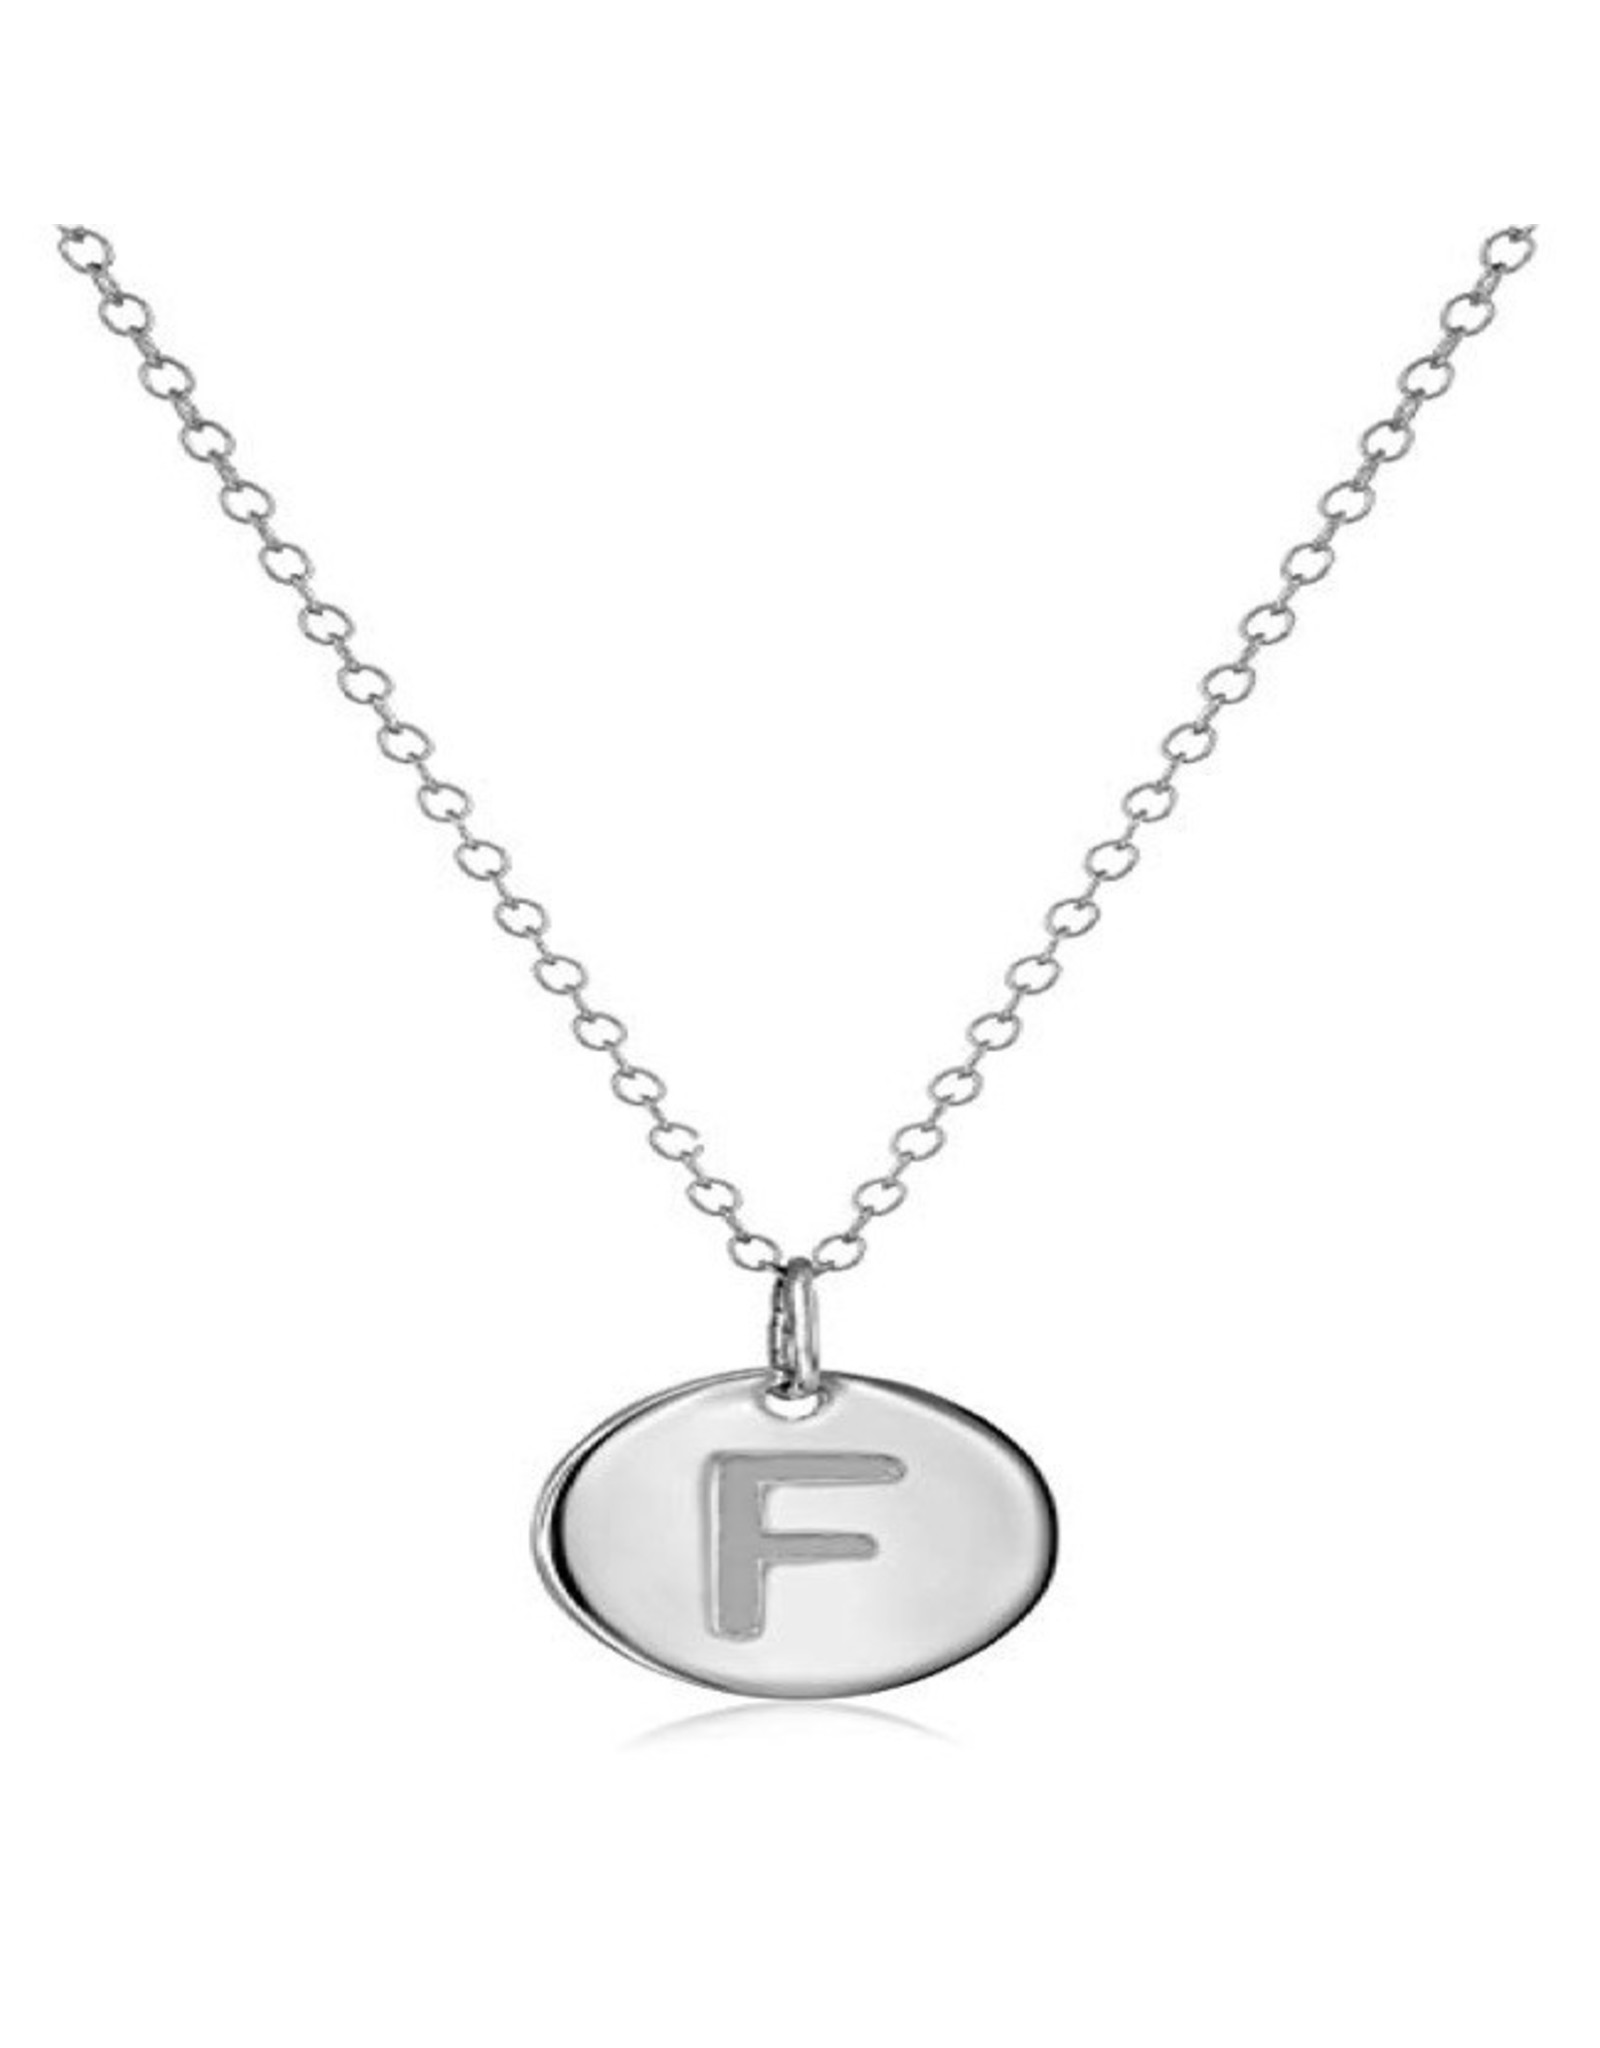 Necklace - Dainty Disc W/ Initial (Silver) (F)